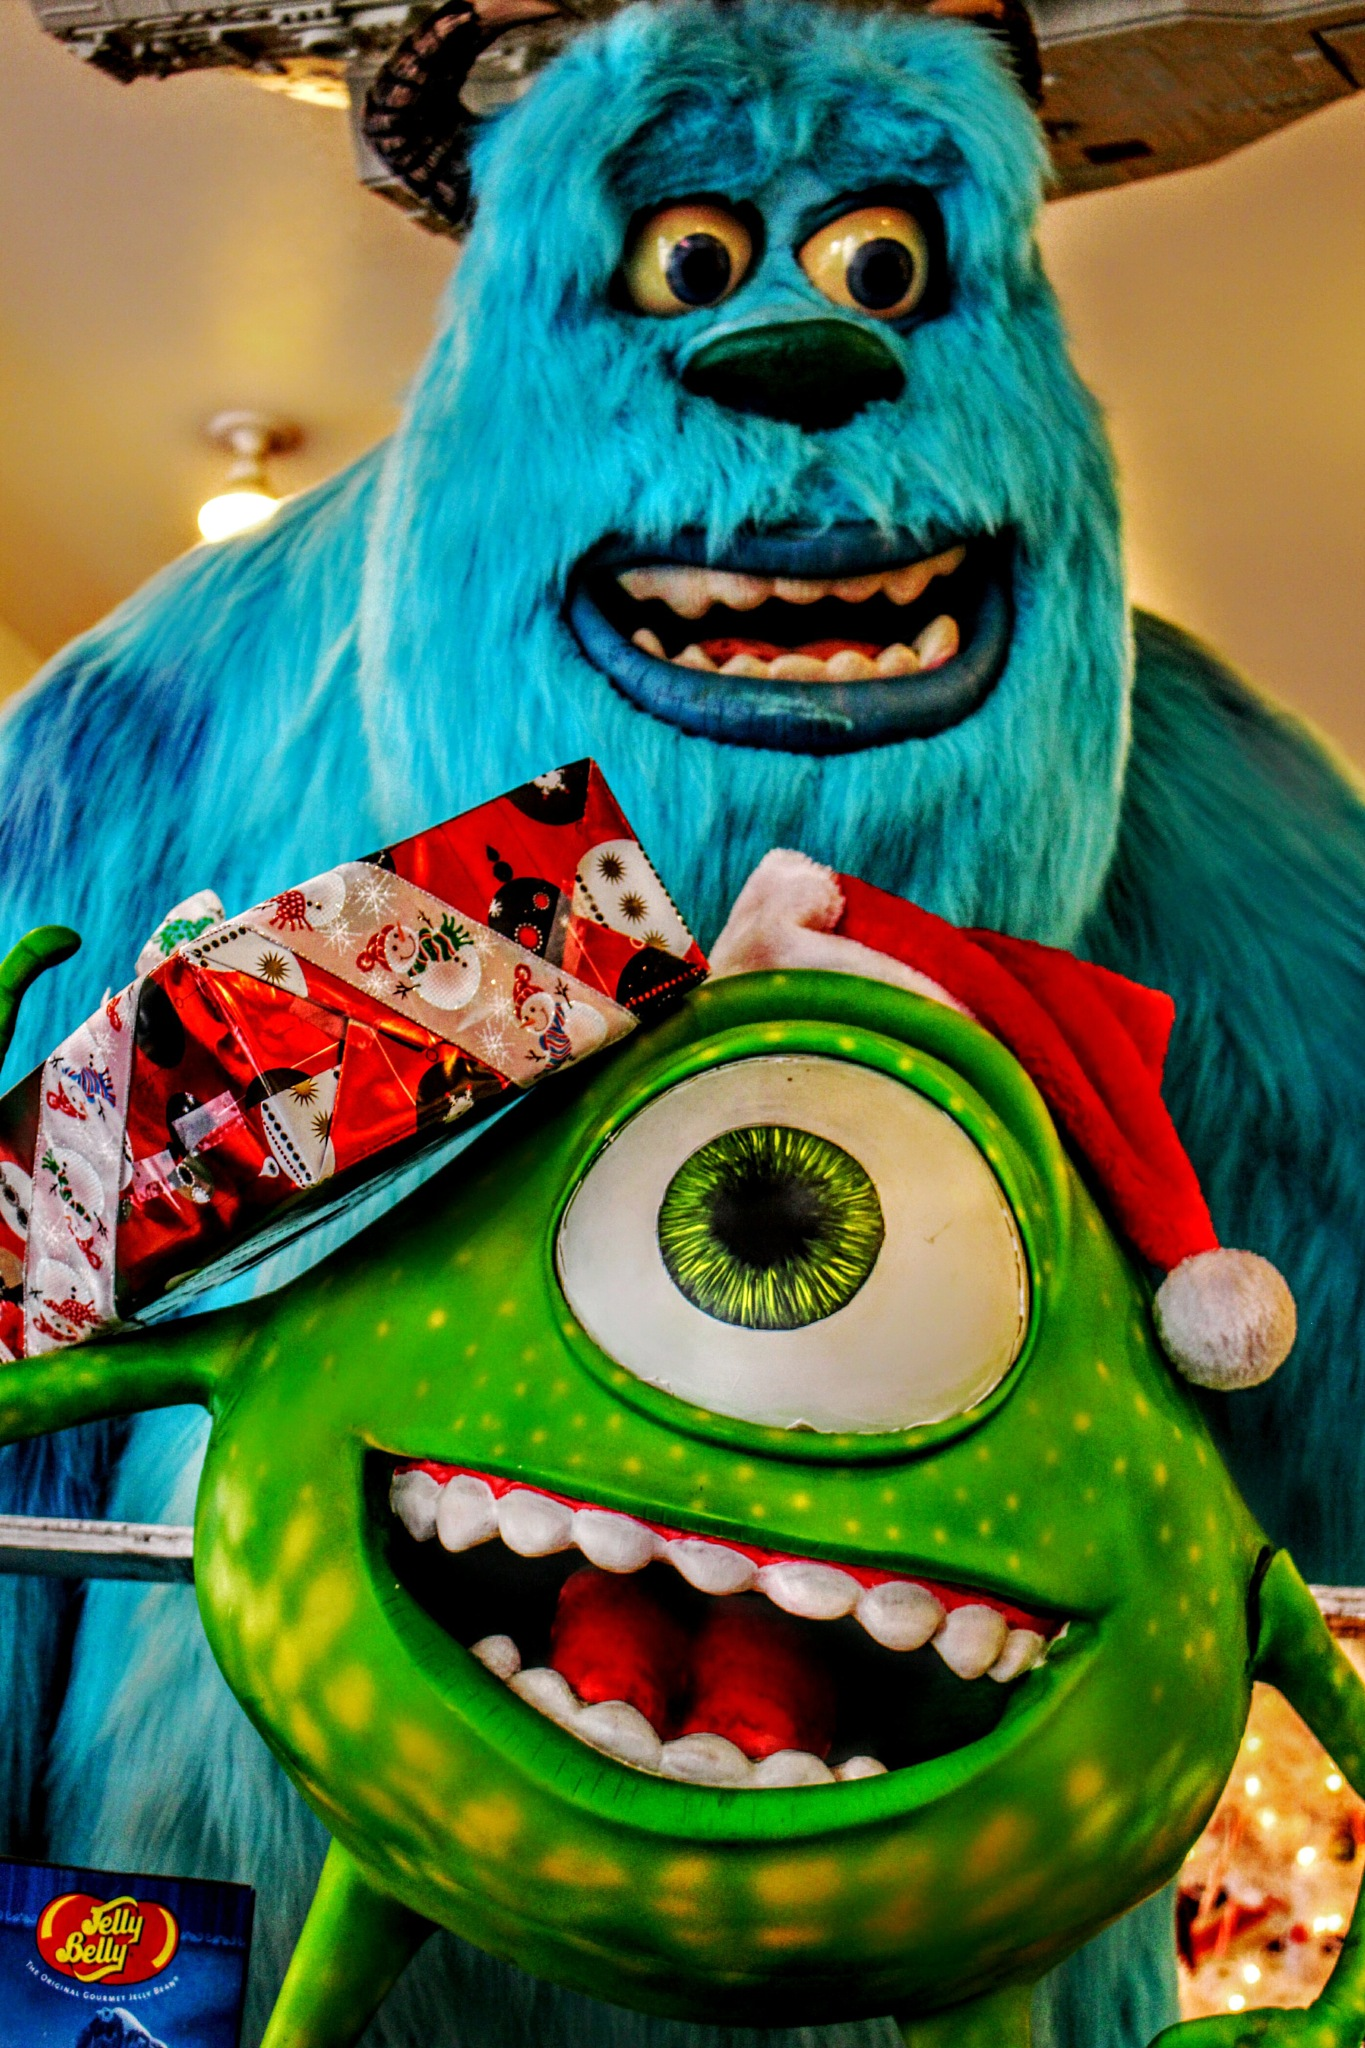 Monsters Inc. Shot this in a candy store by derek.oliver3